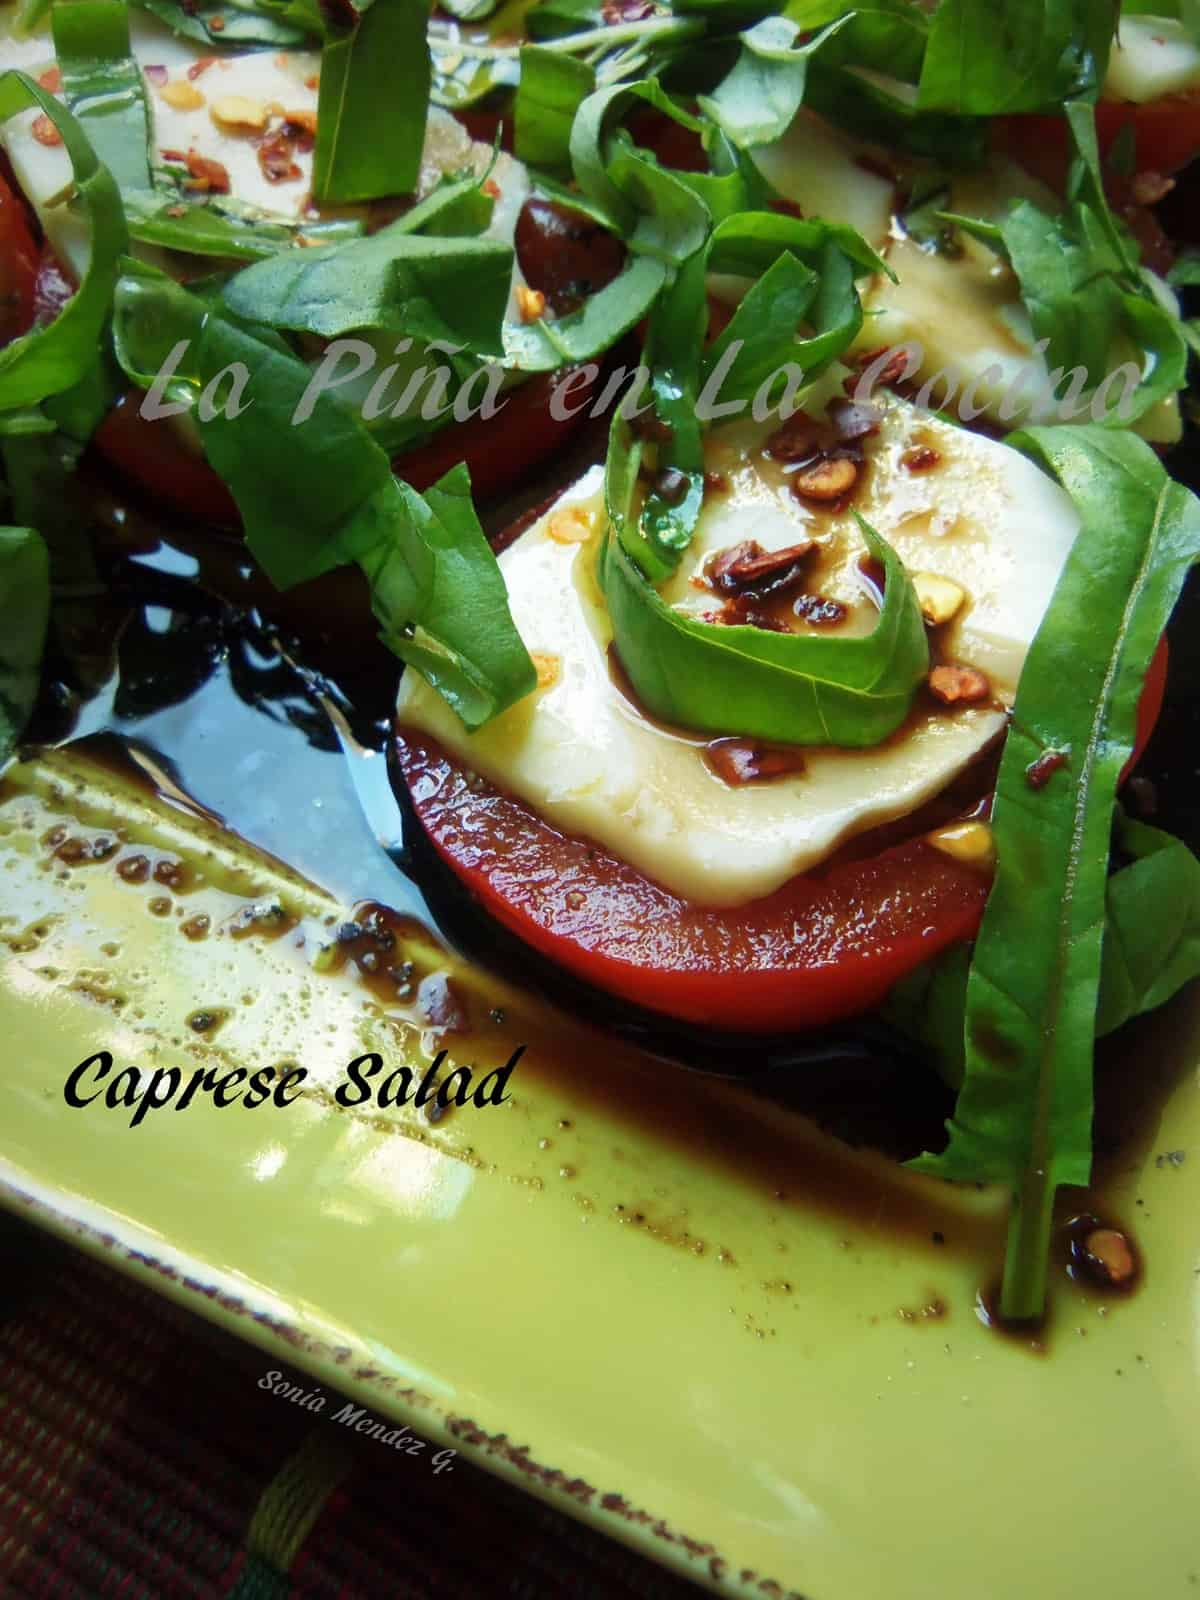 Caprese Salad, Tomato, Mozzarella and Fresh Basil with Balsamic Vinegar, Olive oil